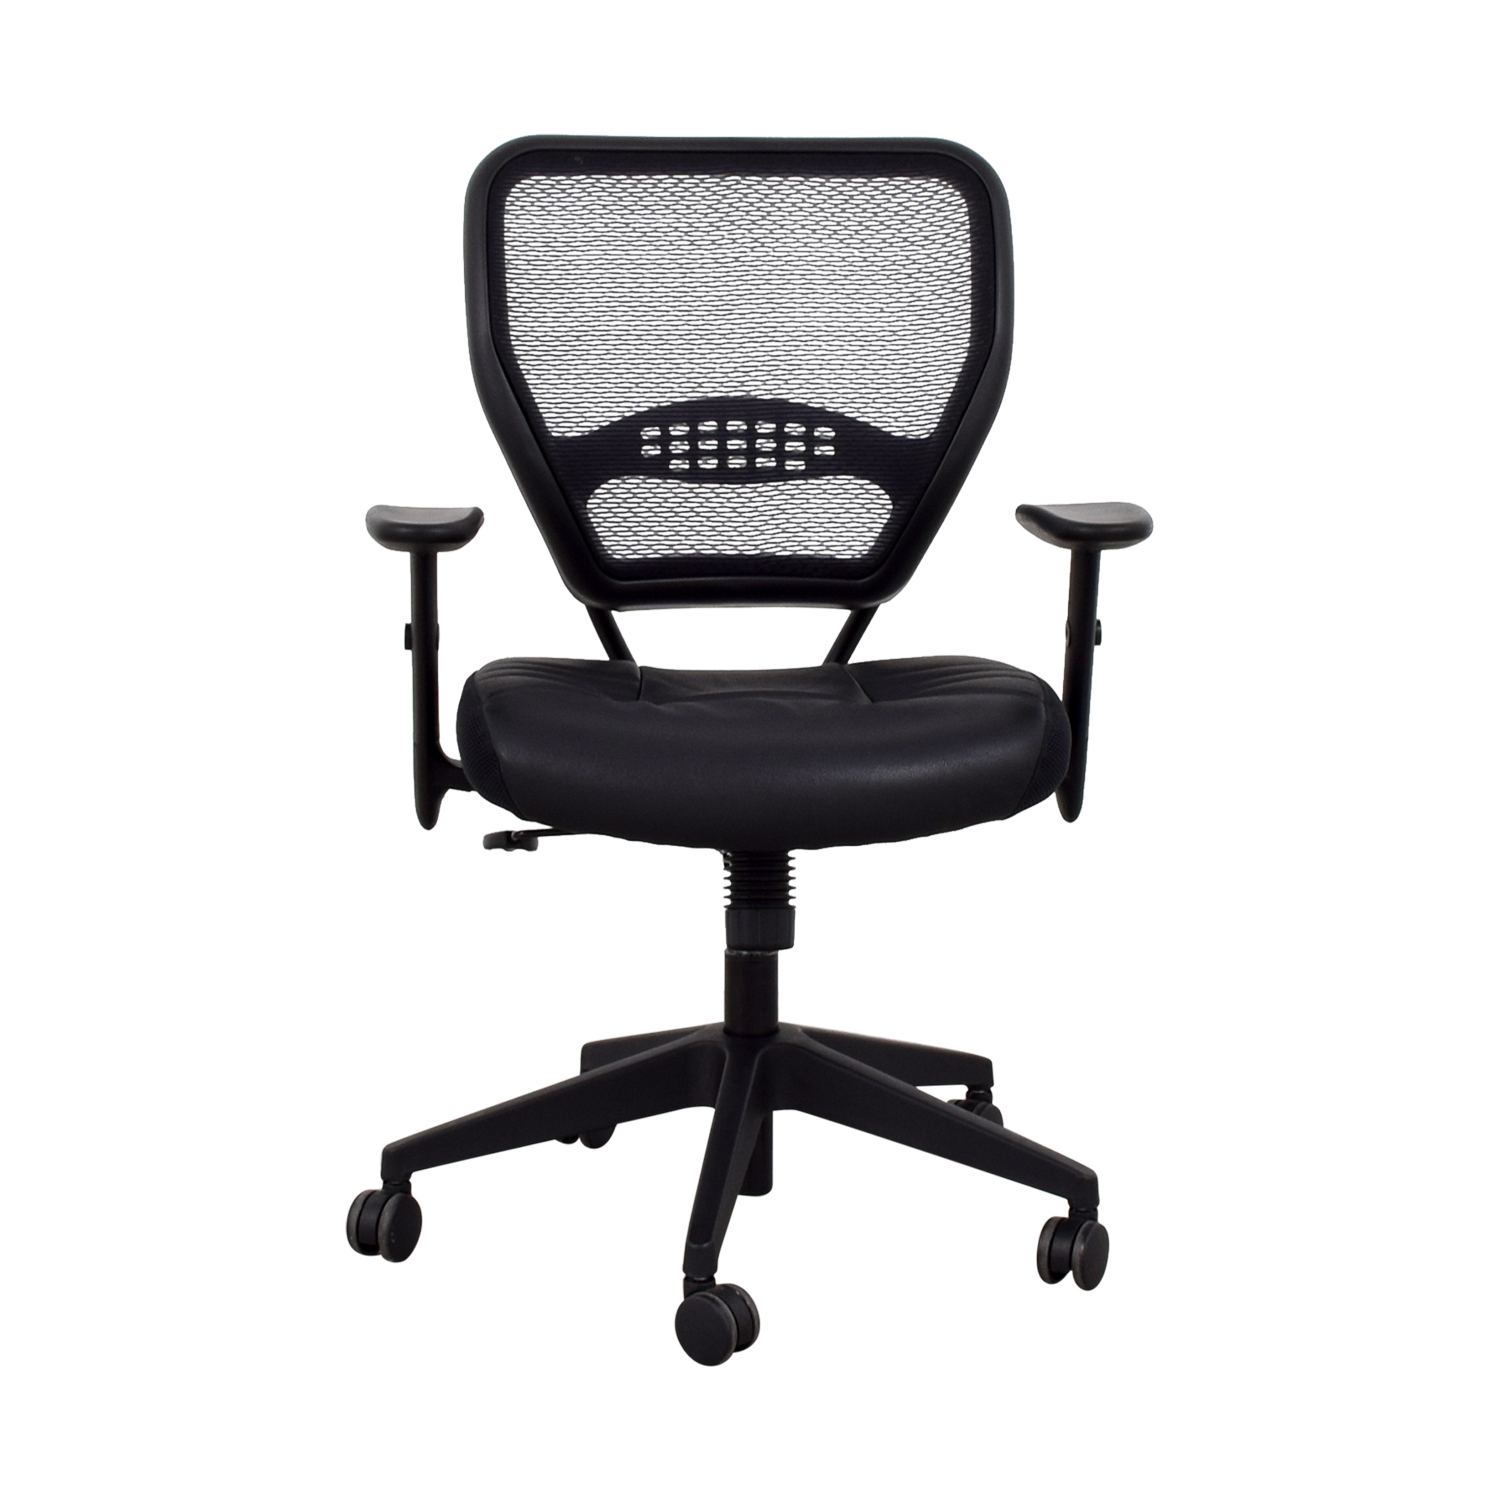 Office Star Office Star Black Eco Leather Seat and Air Grid Back Chair